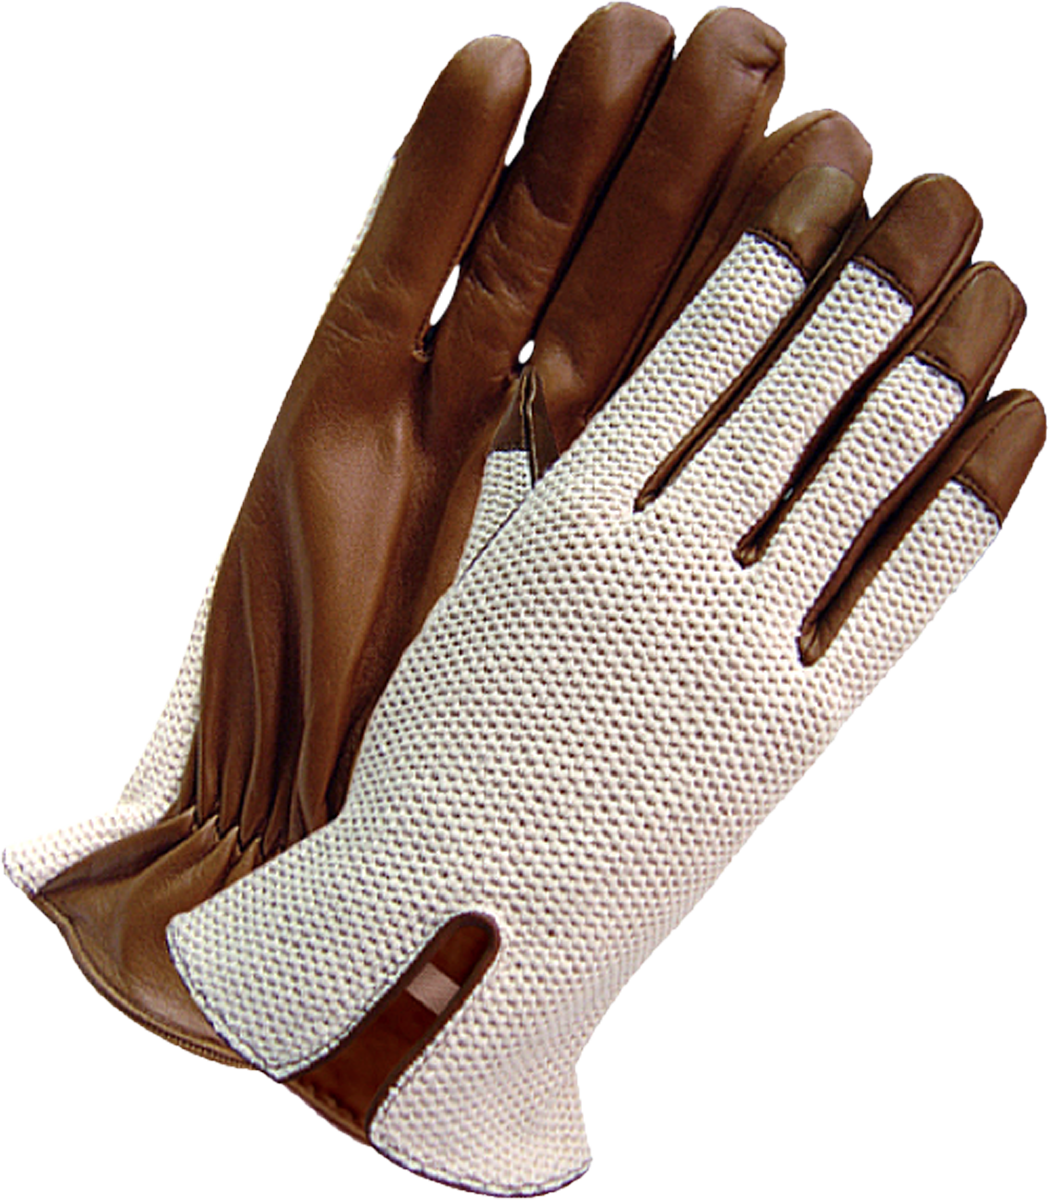 Driving gloves london ontario - Chapal Grand Prix Driving Gloves With Notched Wrists That Allow For Wristwatch Visibility The Leather